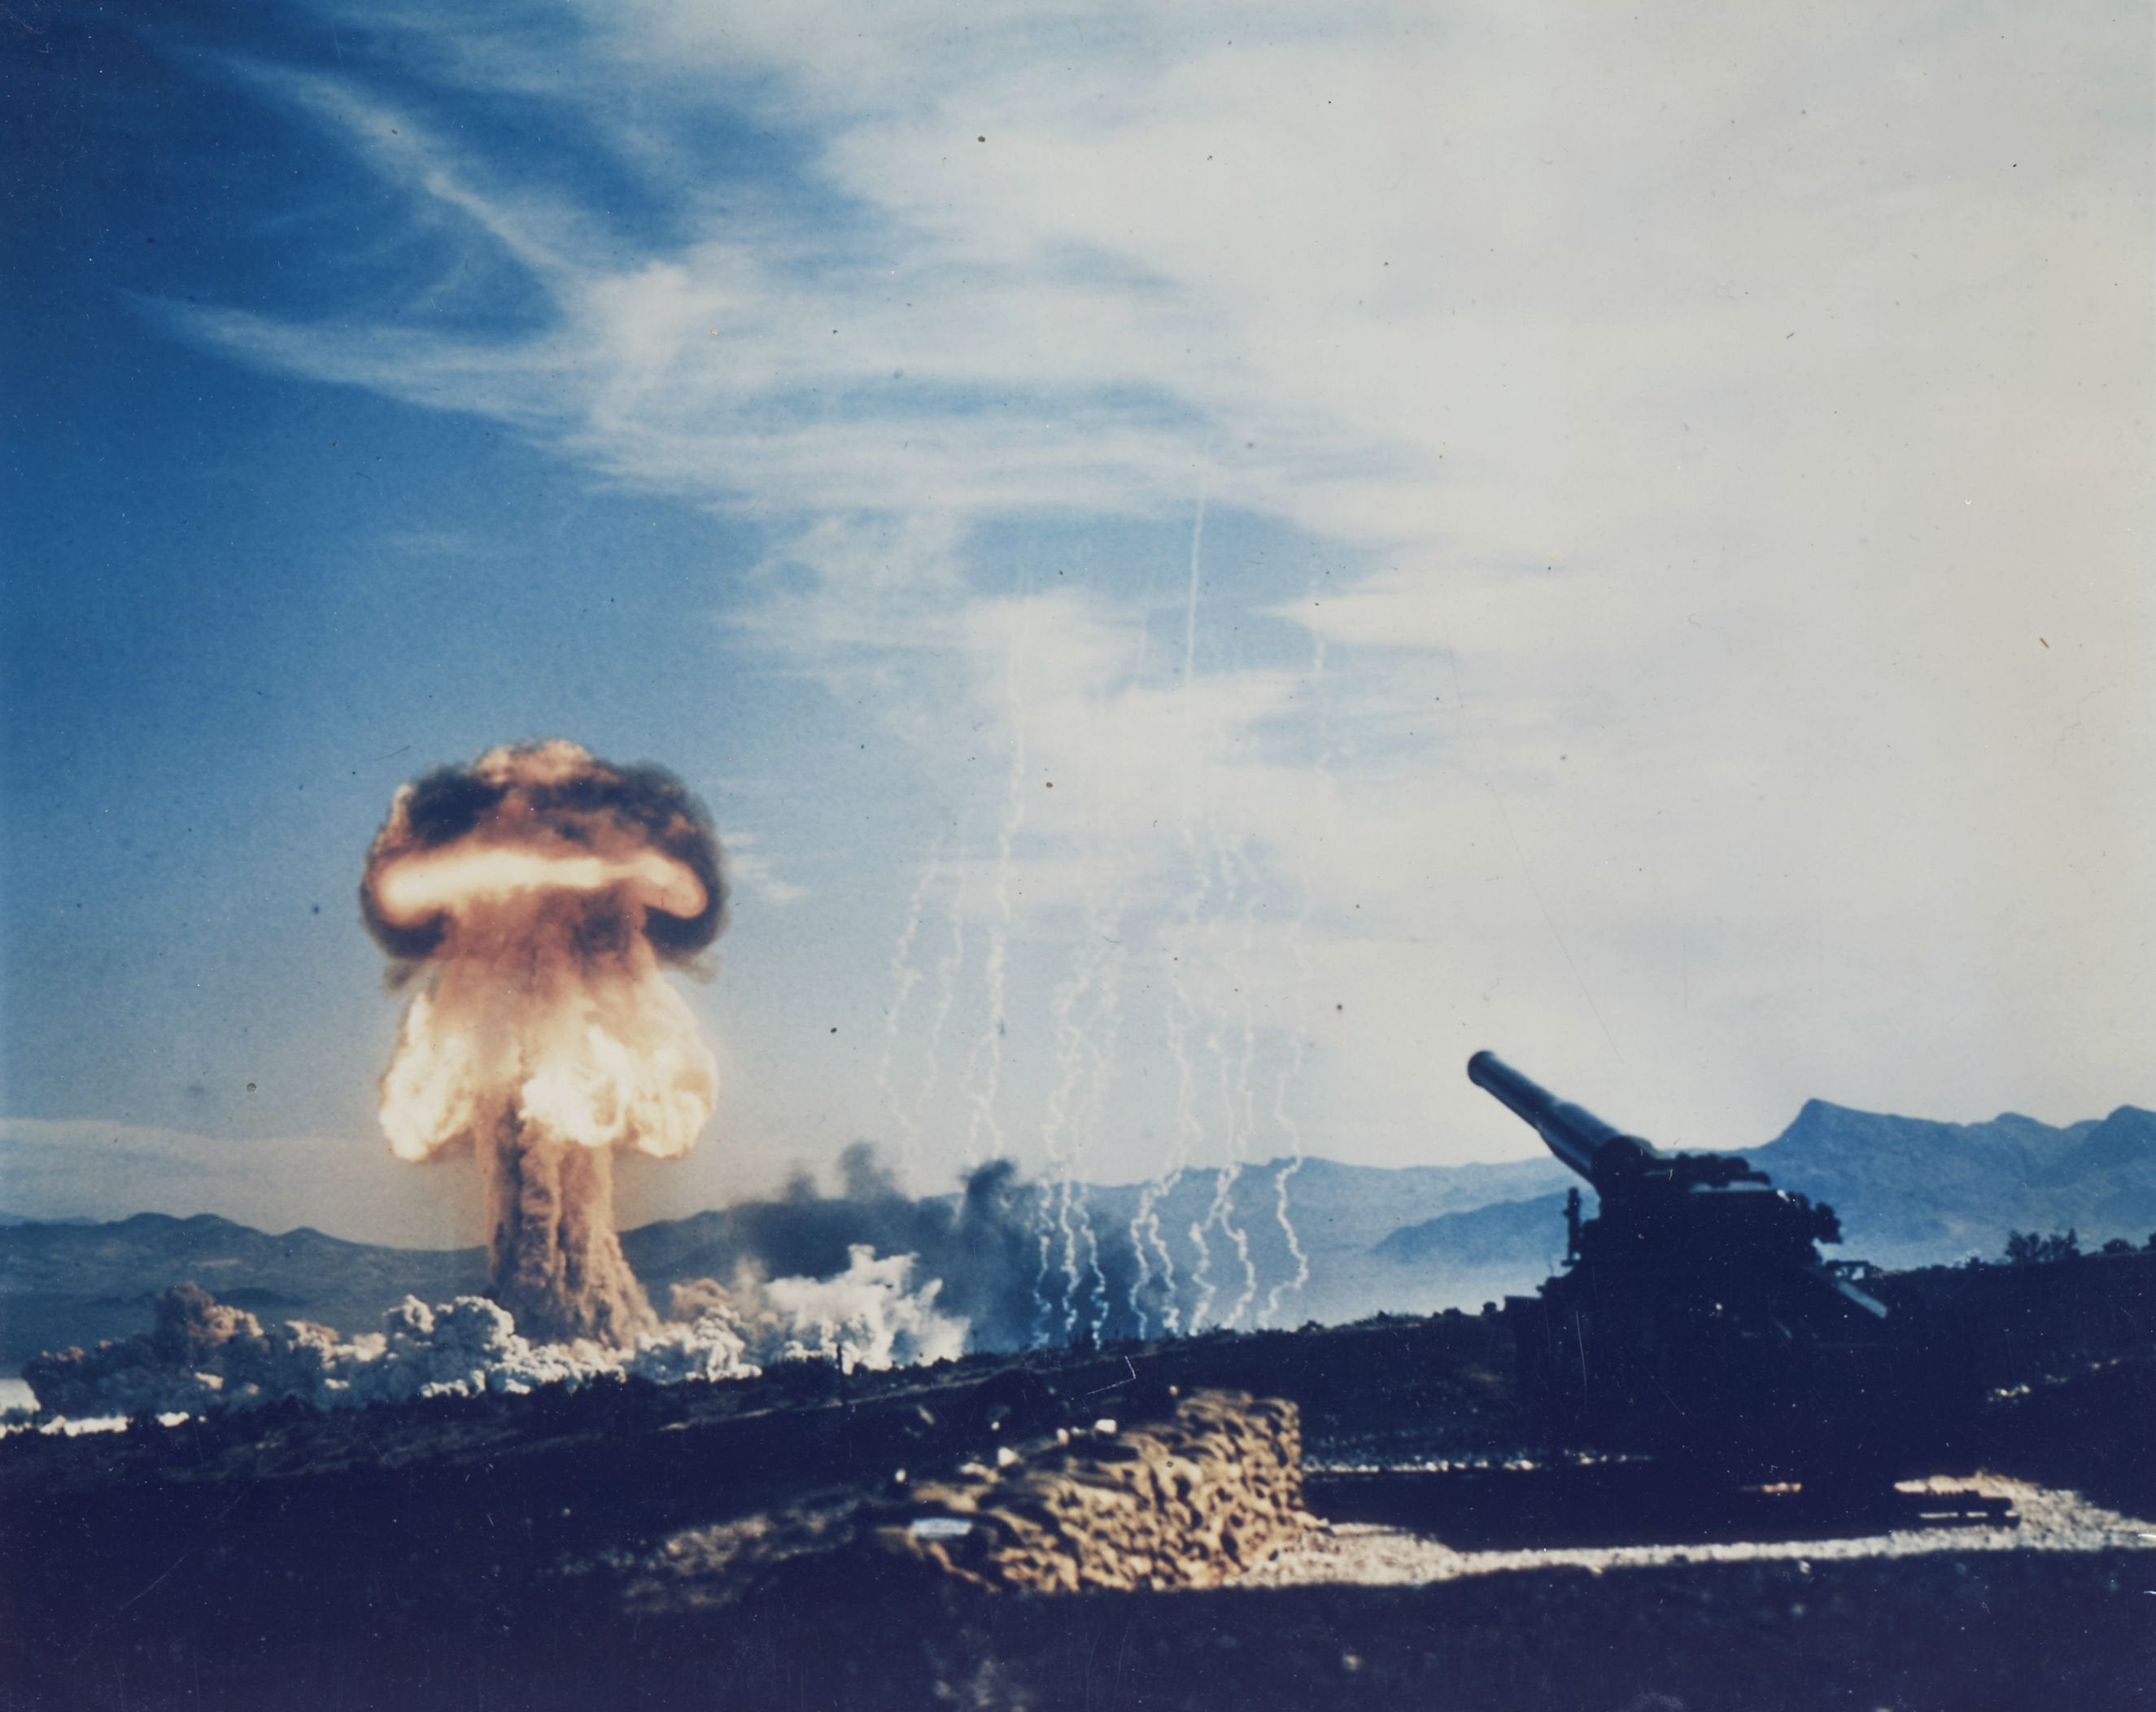 On April 22, 1952, the explosion of the atomic bomb in Nevada